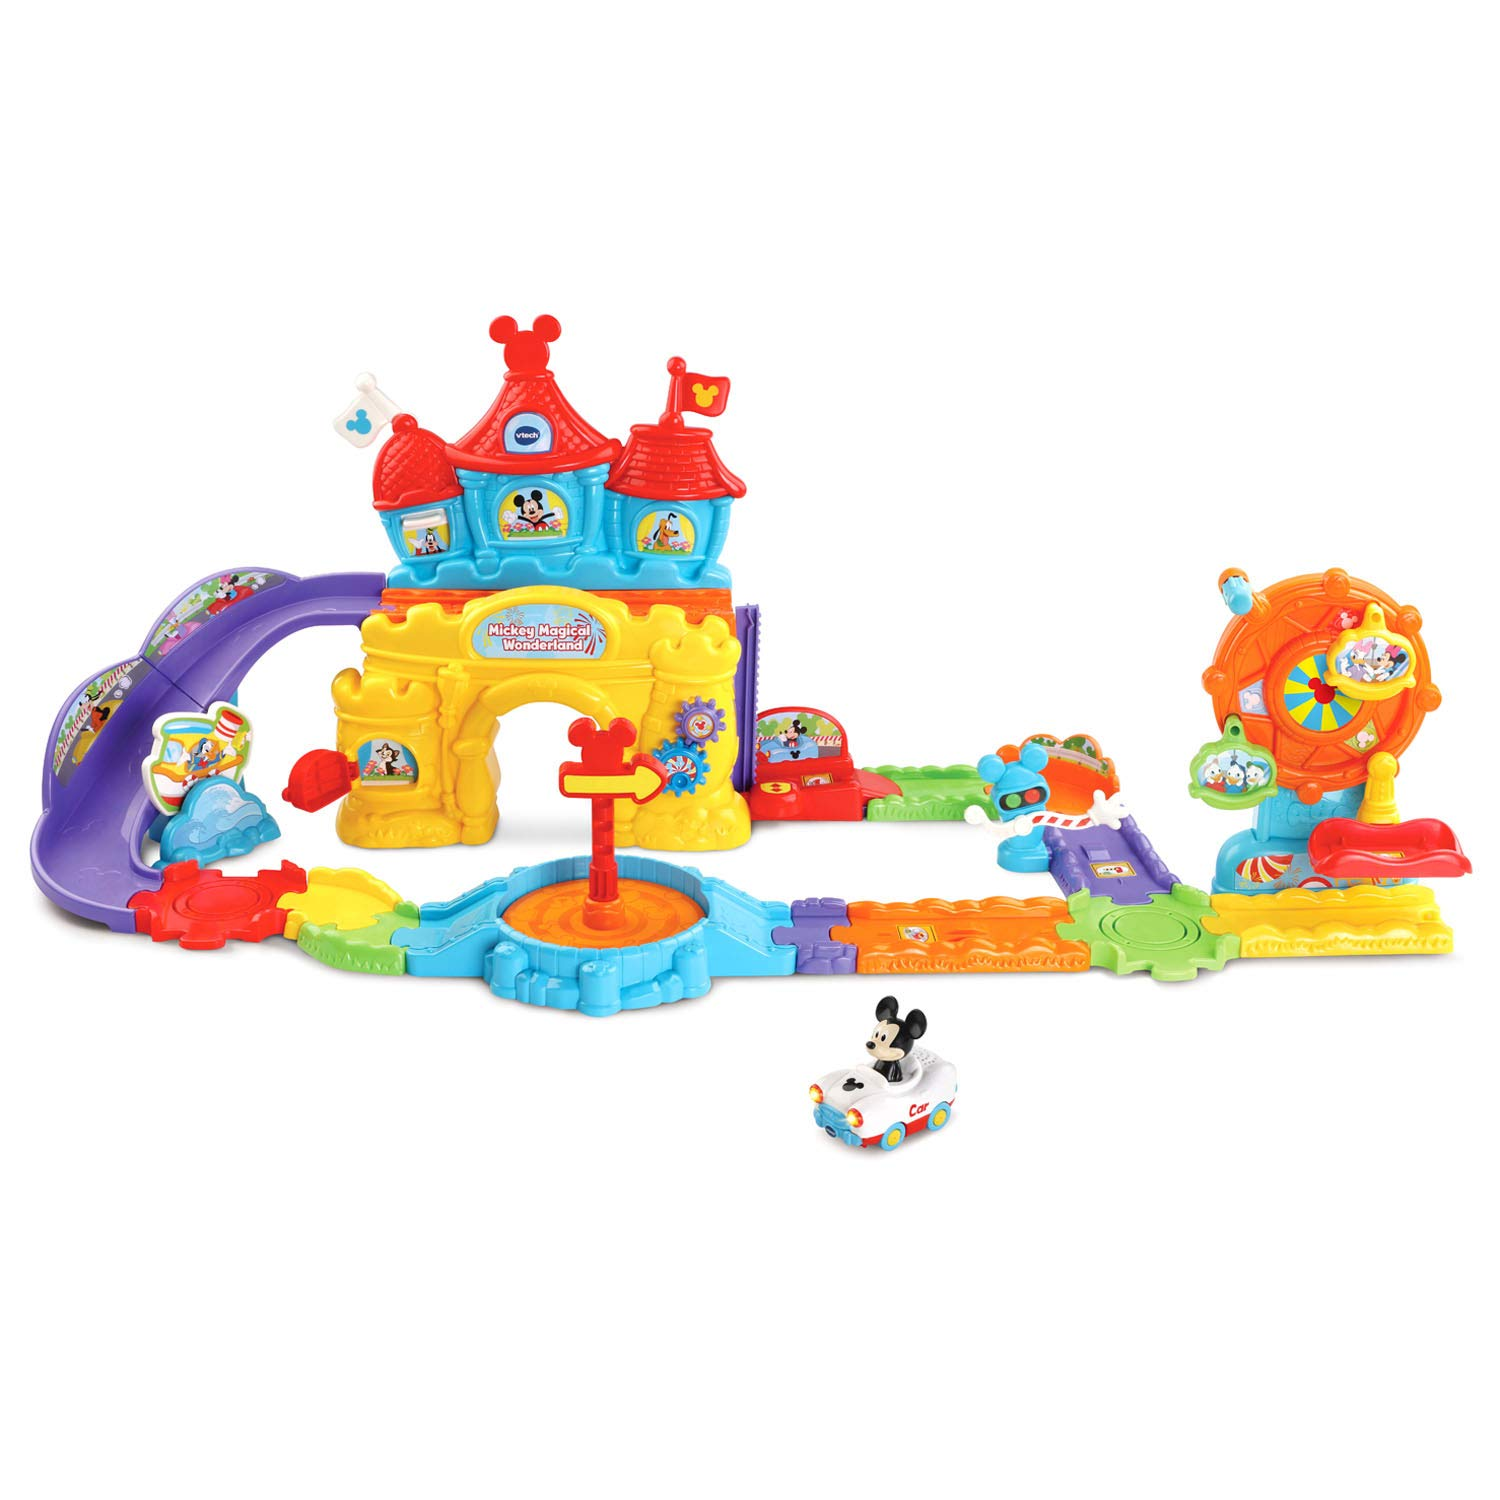 VTech Go! Go! Smart Wheels Mickey Mouse Magical Wonderland, Multicolor